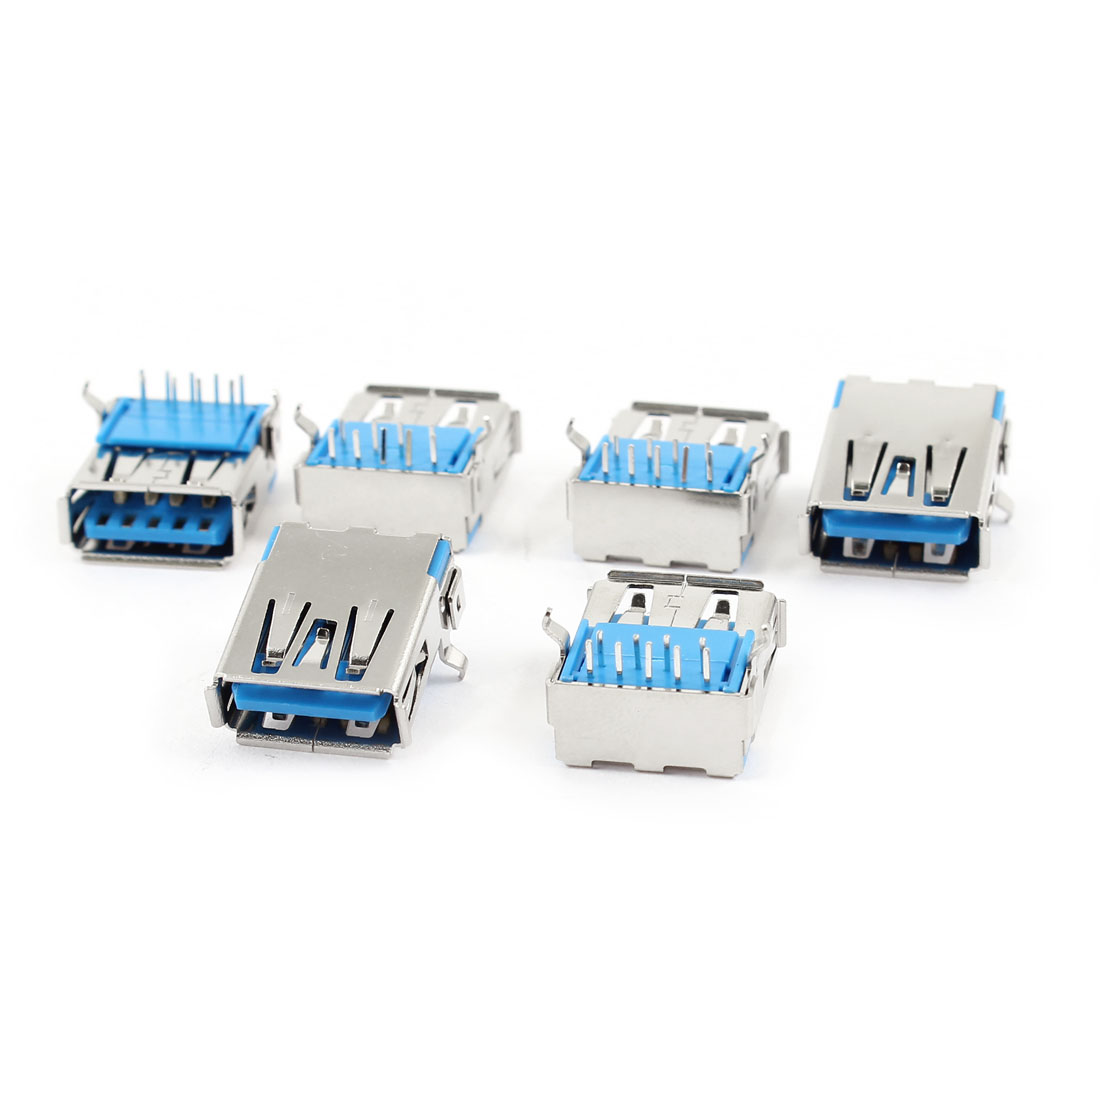 6 Pcs USB3.0 Type A Female Port 9 Pin 90 Degree DIP Panel Mount Jack Socket Connector